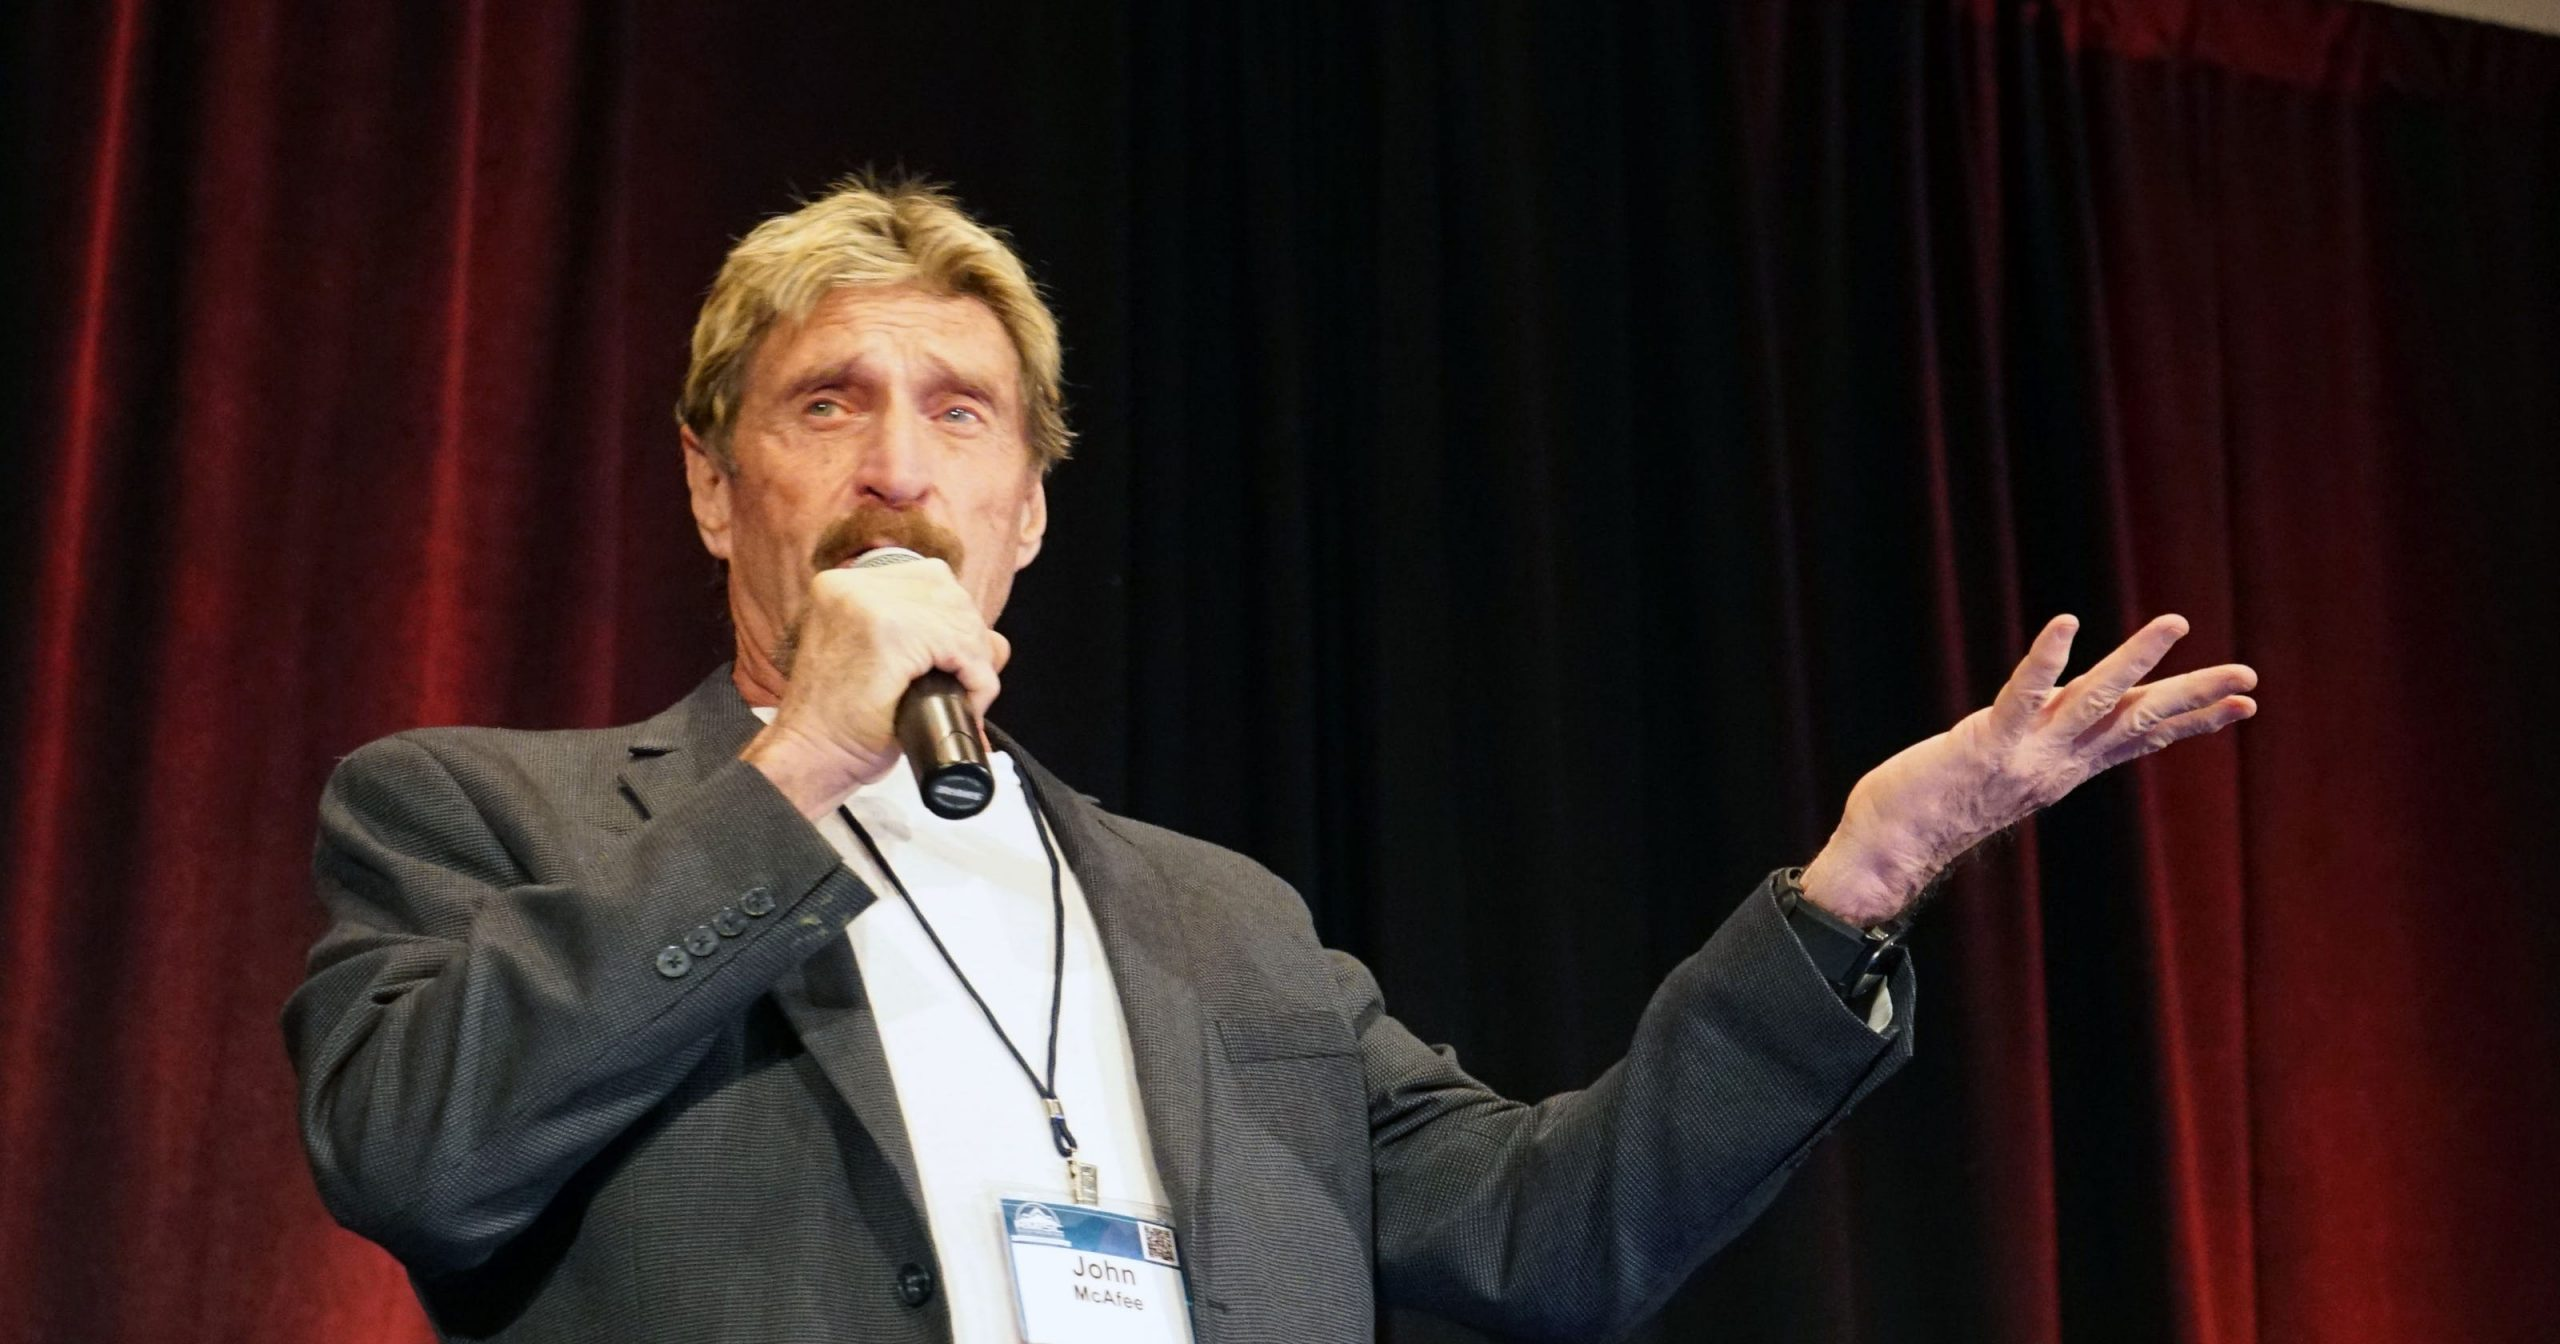 McAfee founder found dead after Spanish court approves extradition